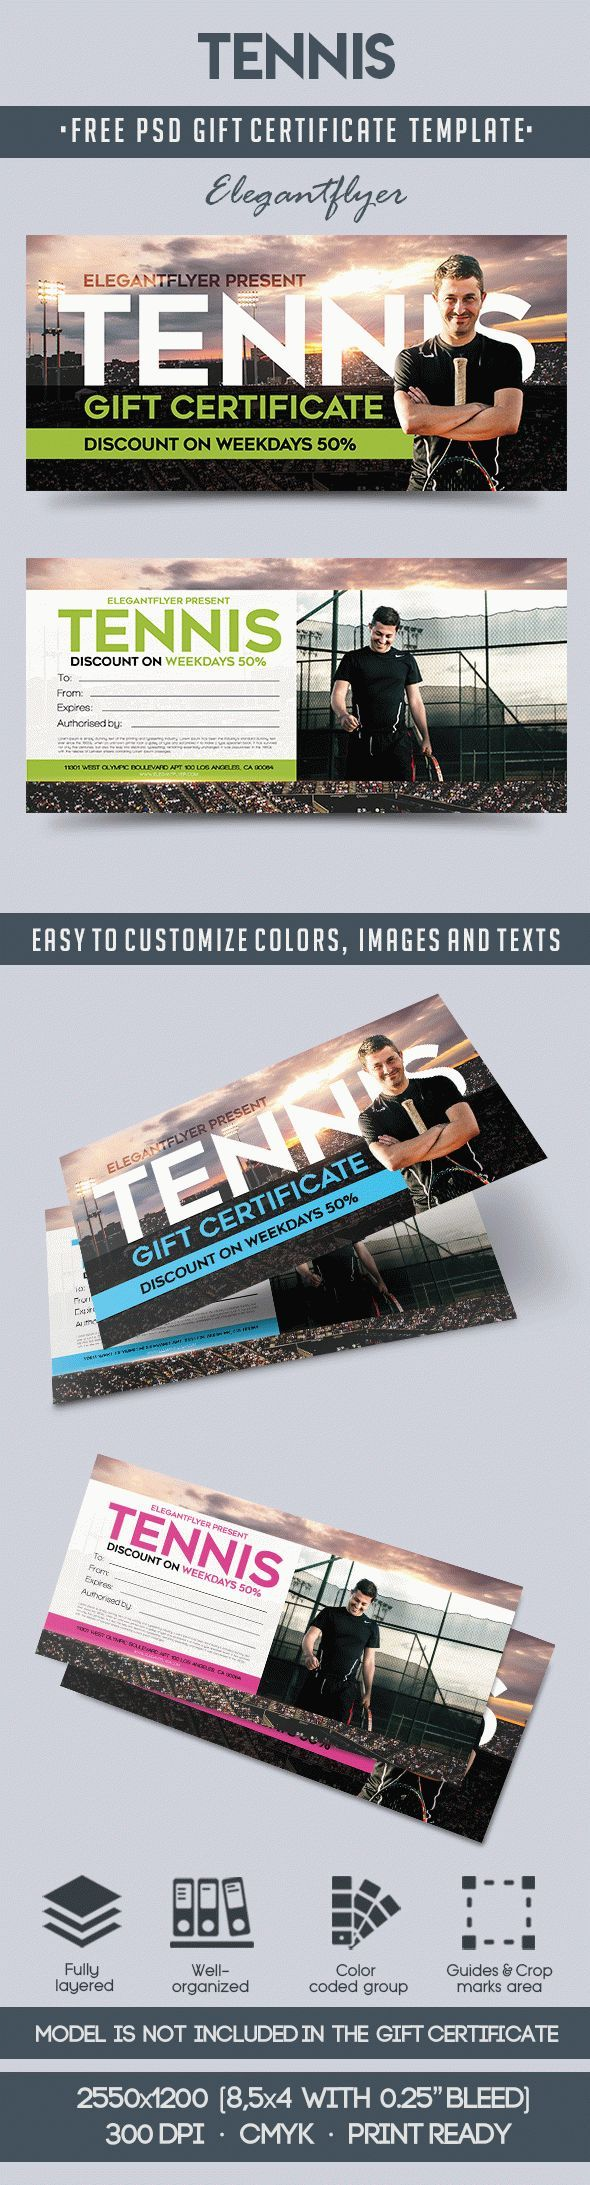 Tennis Free Gift Certificate Psd Template Free Gift Certificate